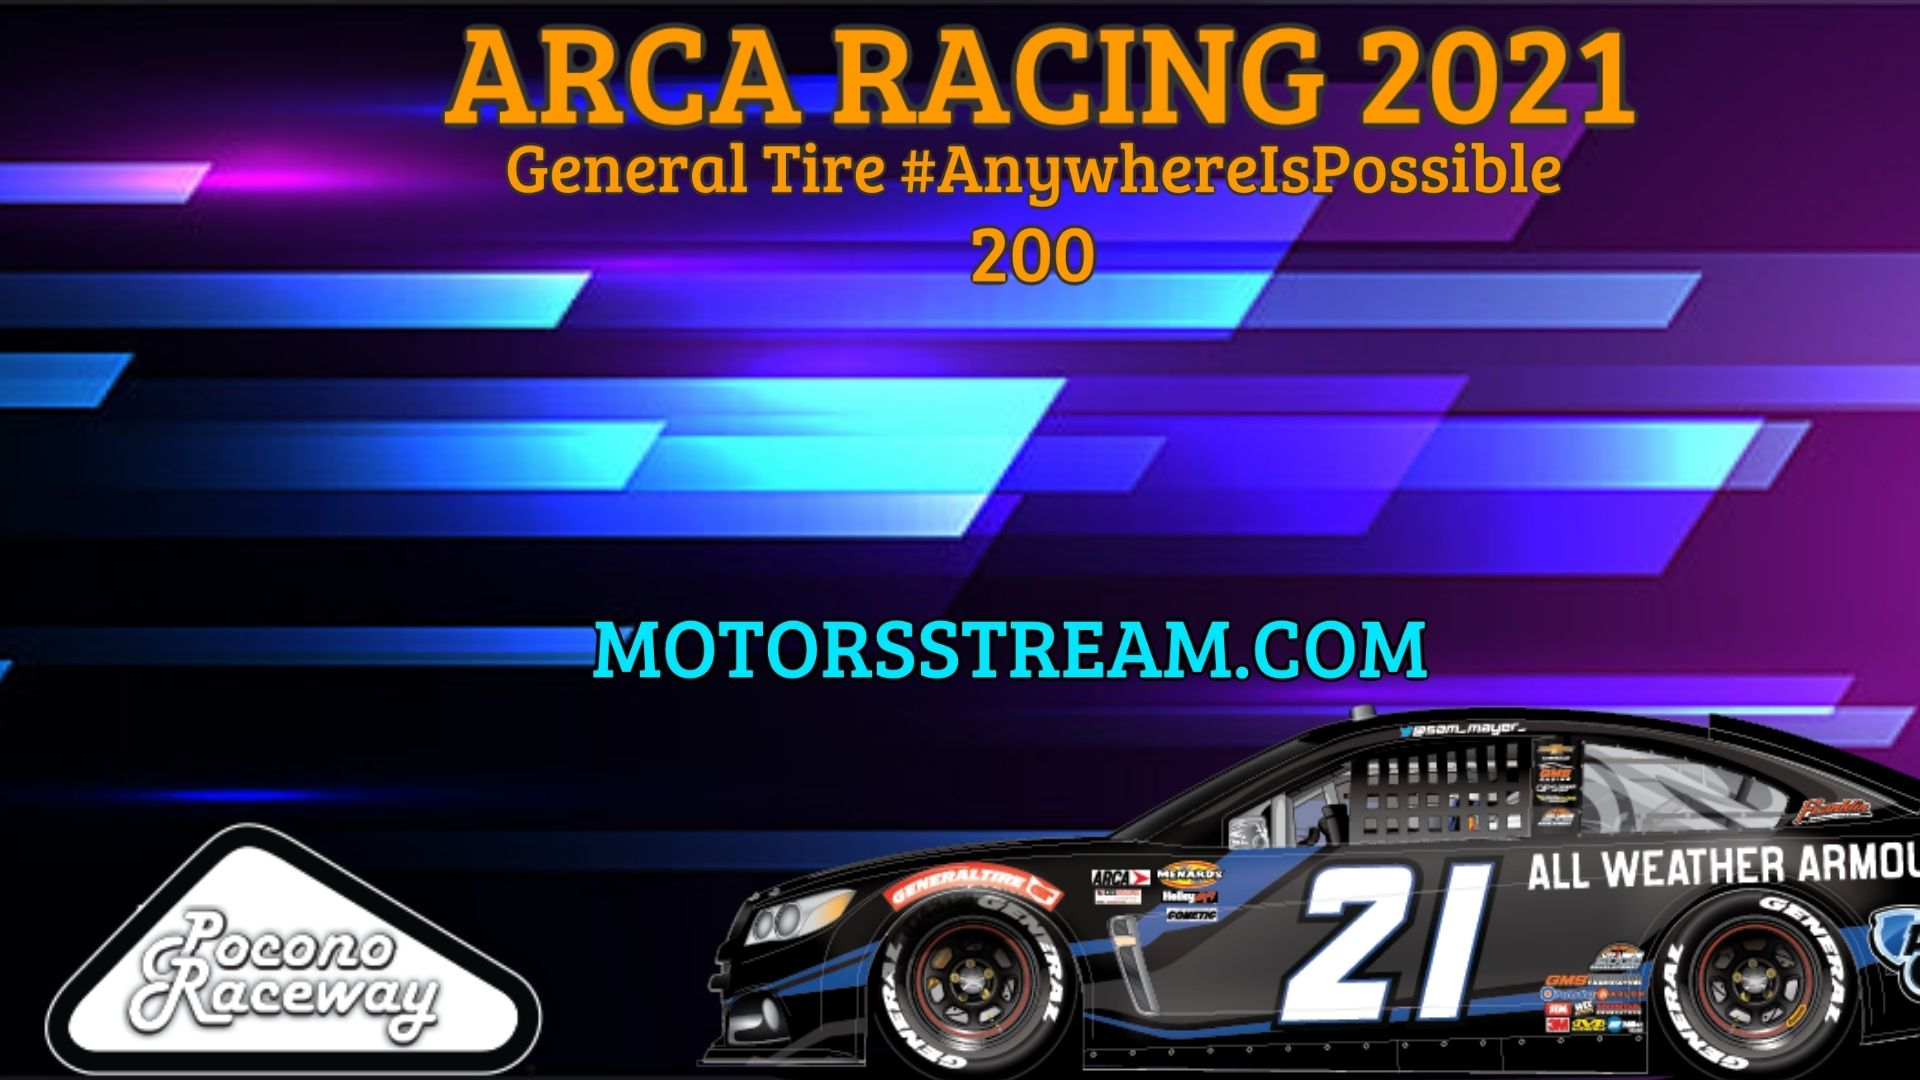 General Tire #Anywhereispossible 200 Live Stream 2021 ARCA Racing